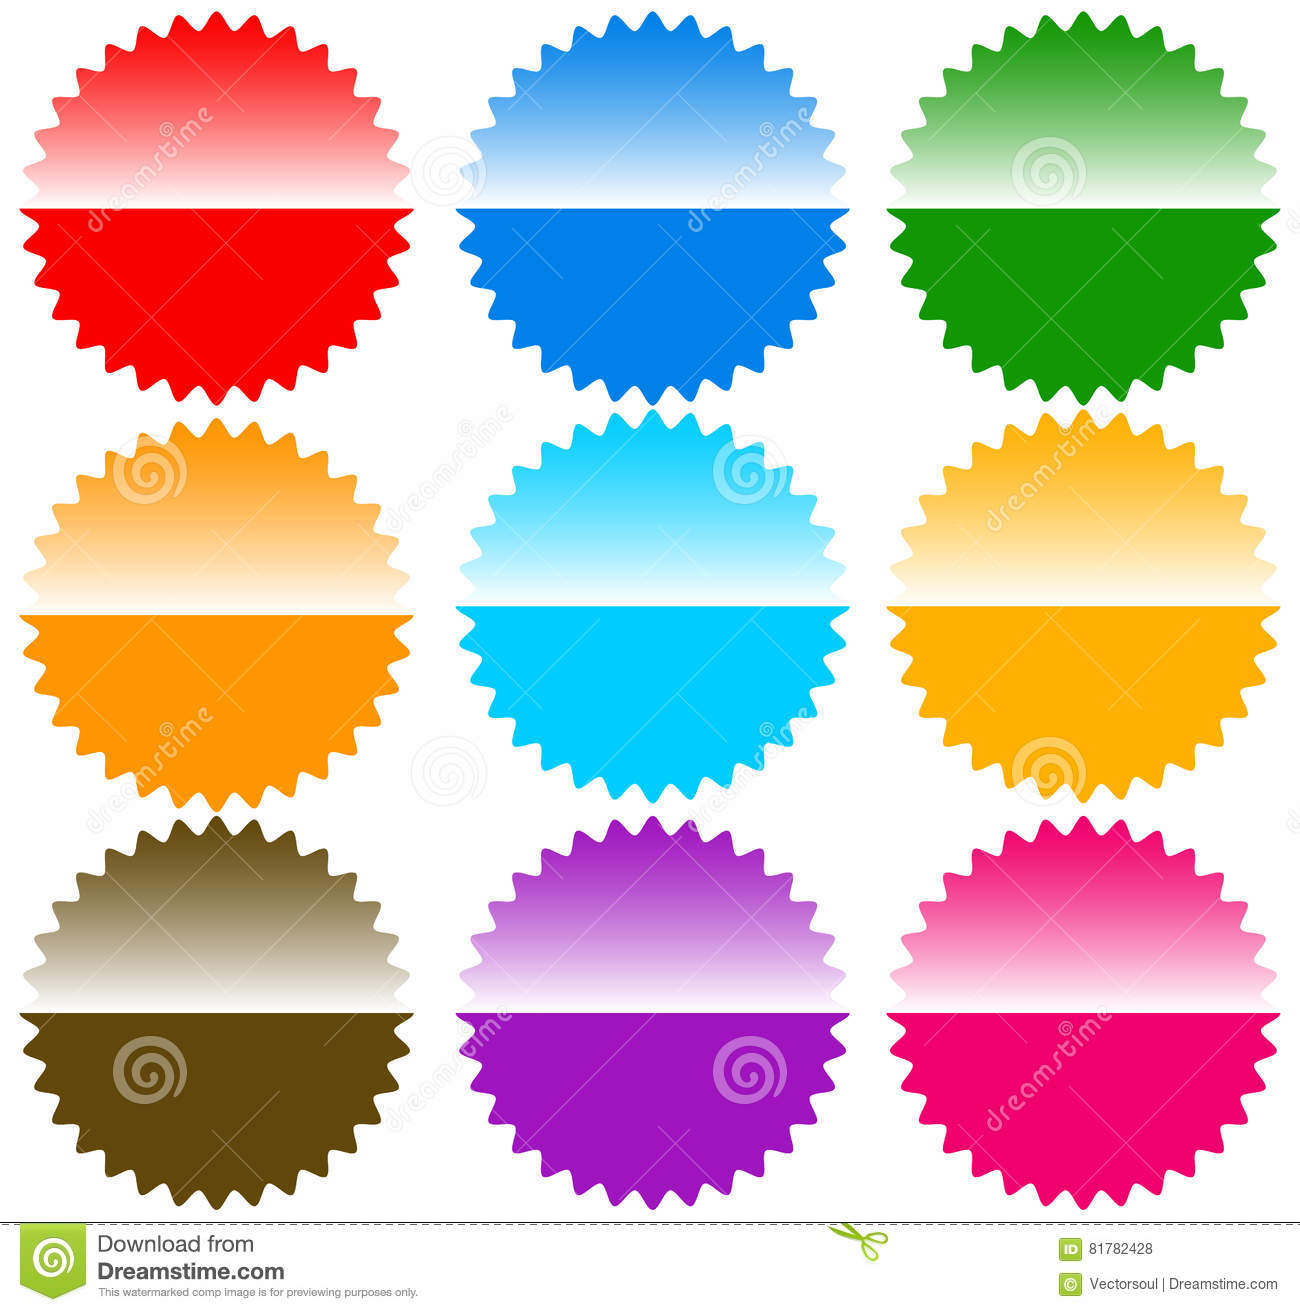 Button / Badge / Pin / Tag / Label Shapes, Elements Stock Vector